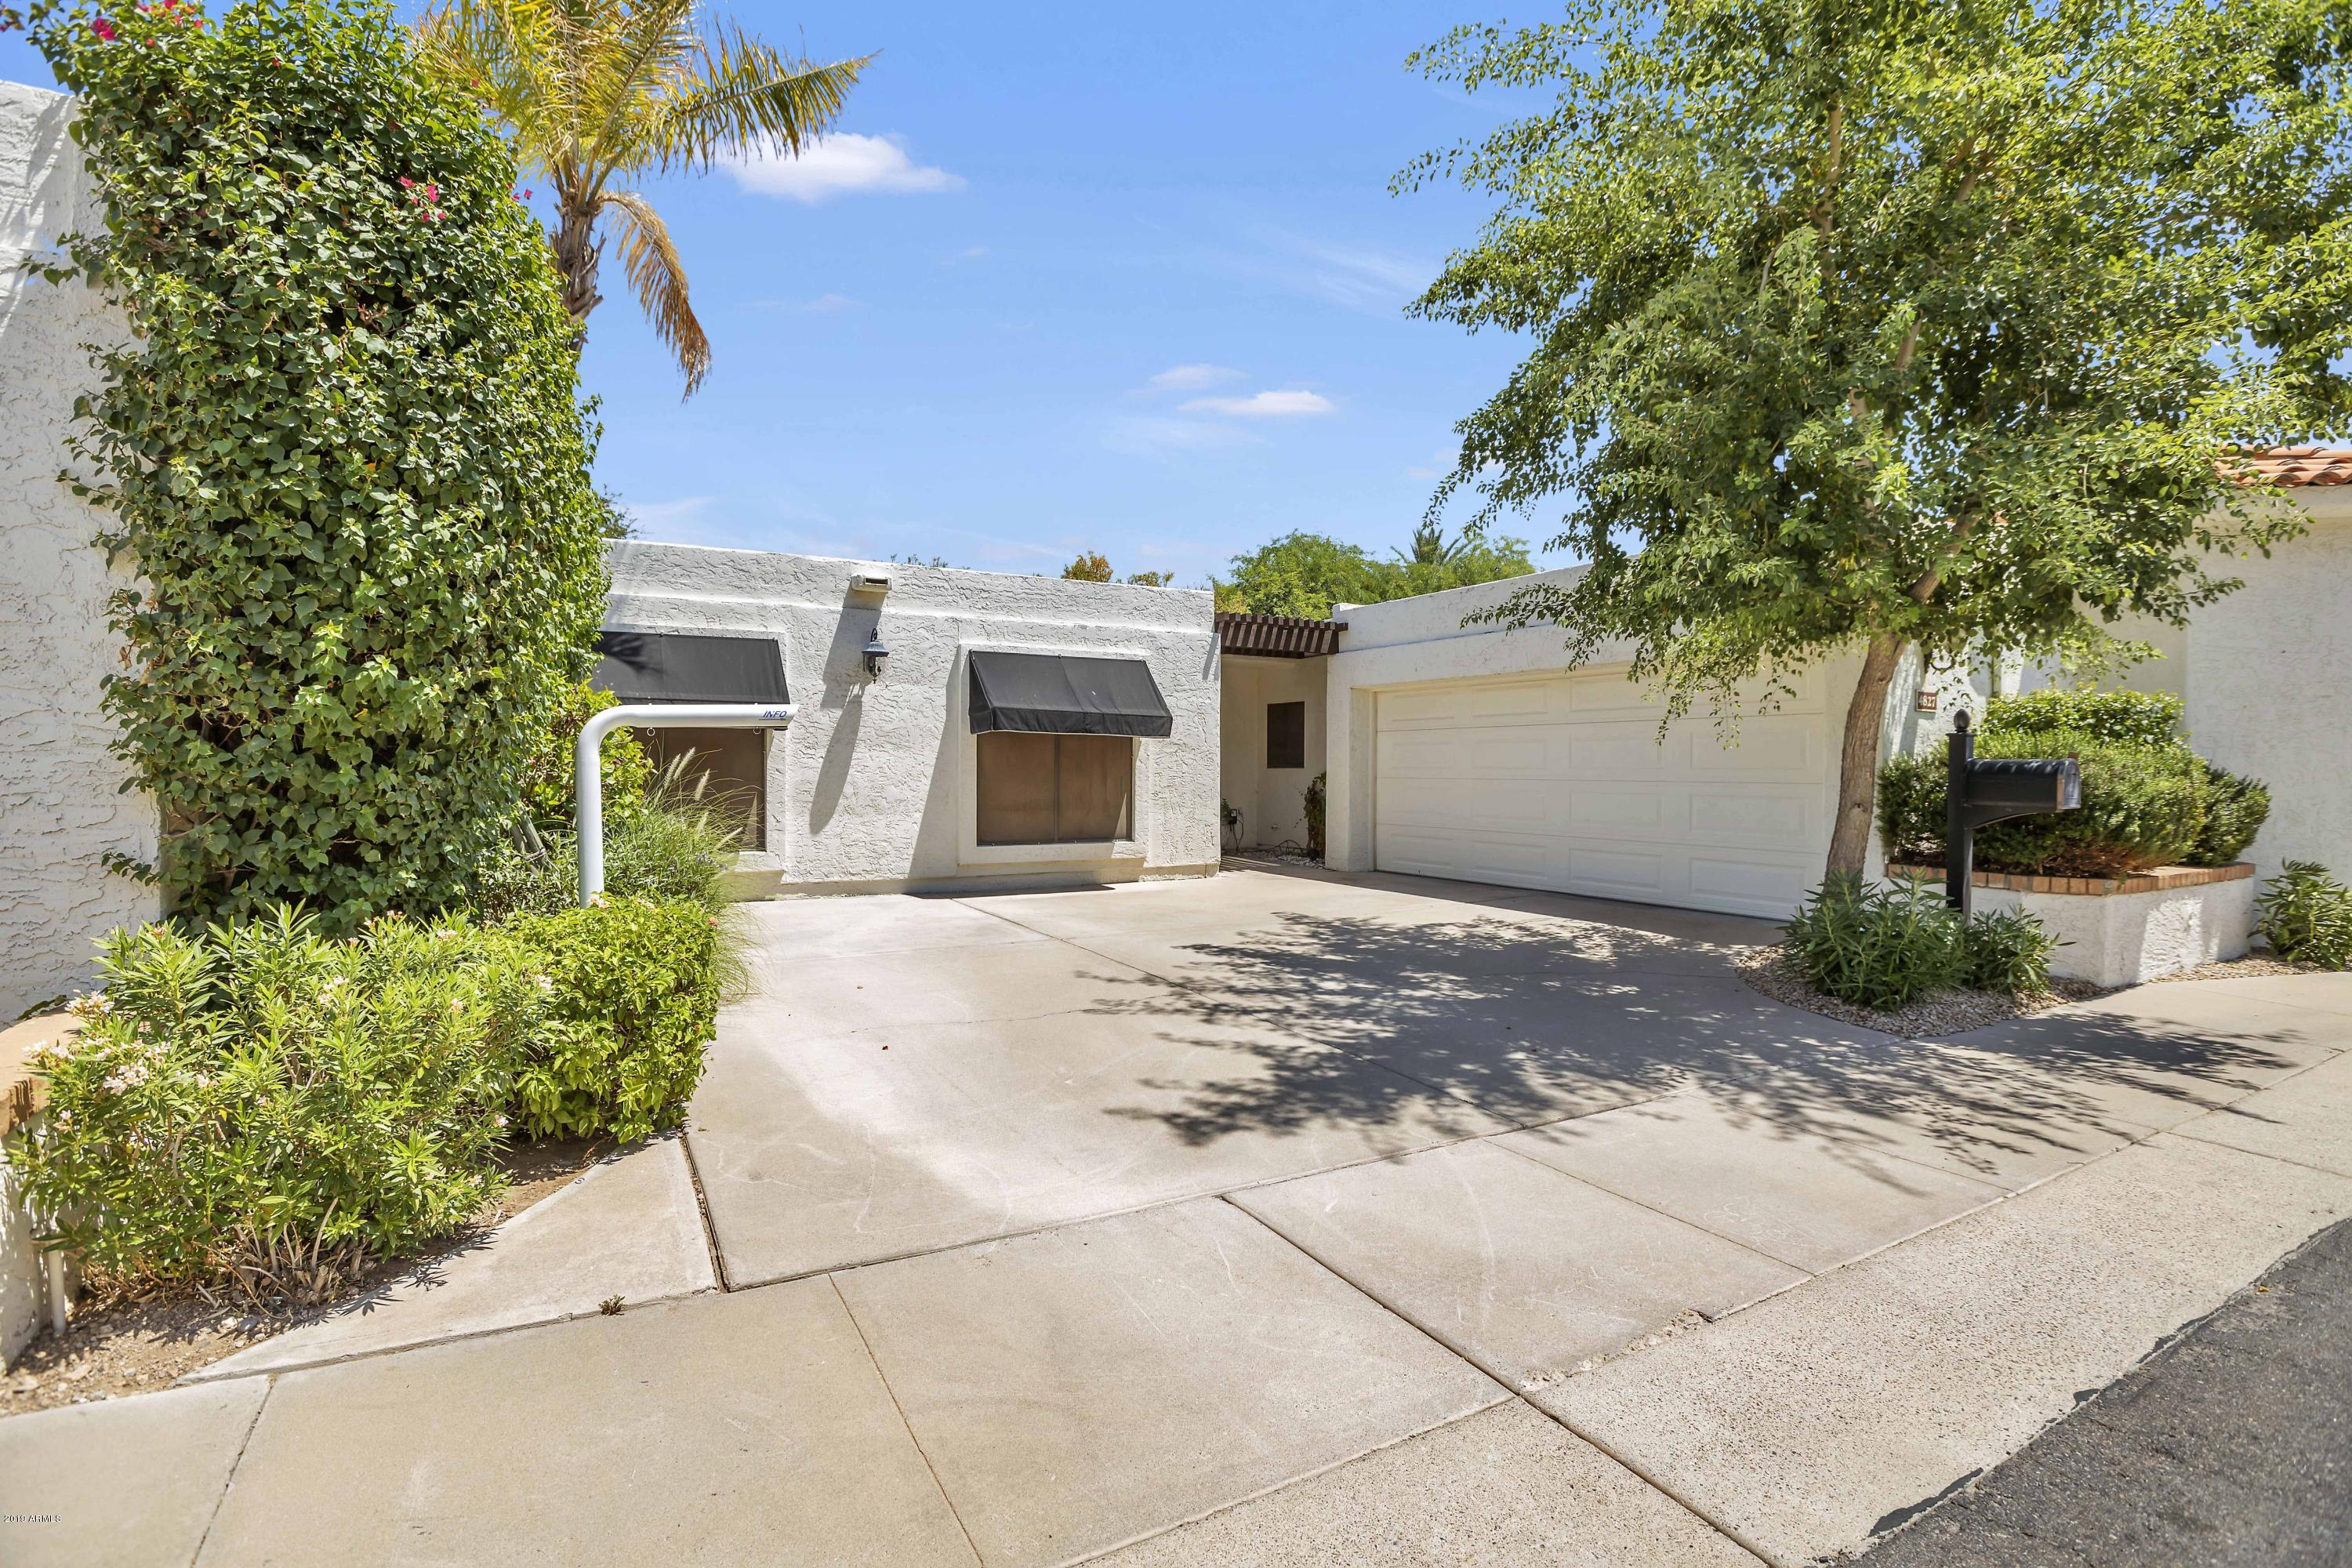 4827 N 35TH Place, Phoenix-Camelback Corridor, Arizona